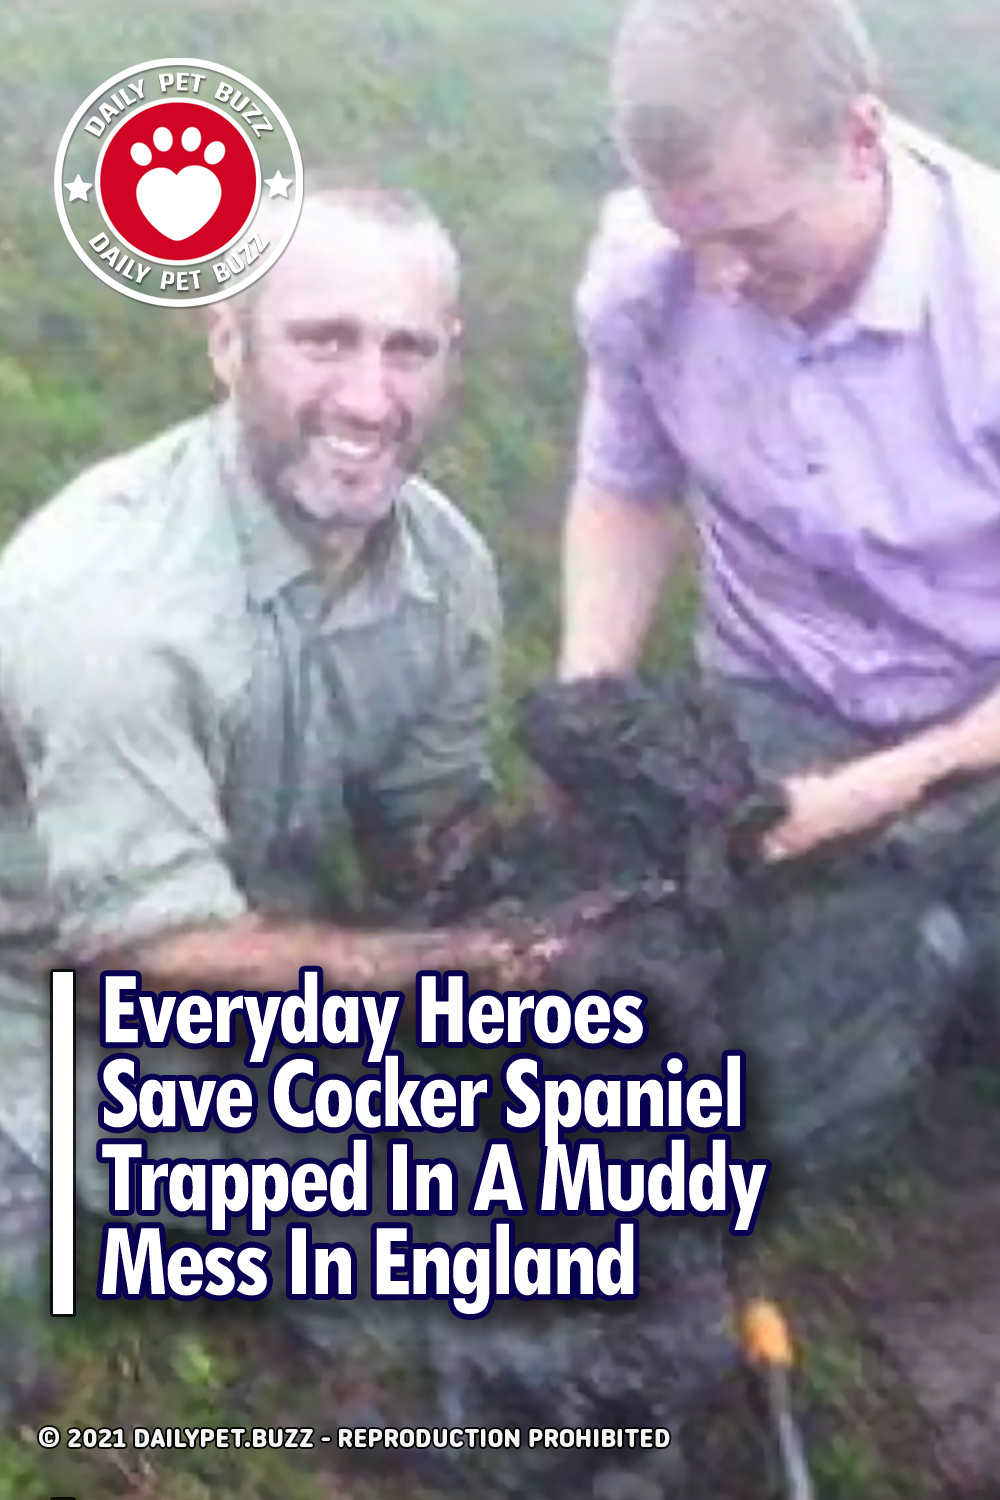 Everyday Heroes Save Cocker Spaniel Trapped In A Muddy Mess In England